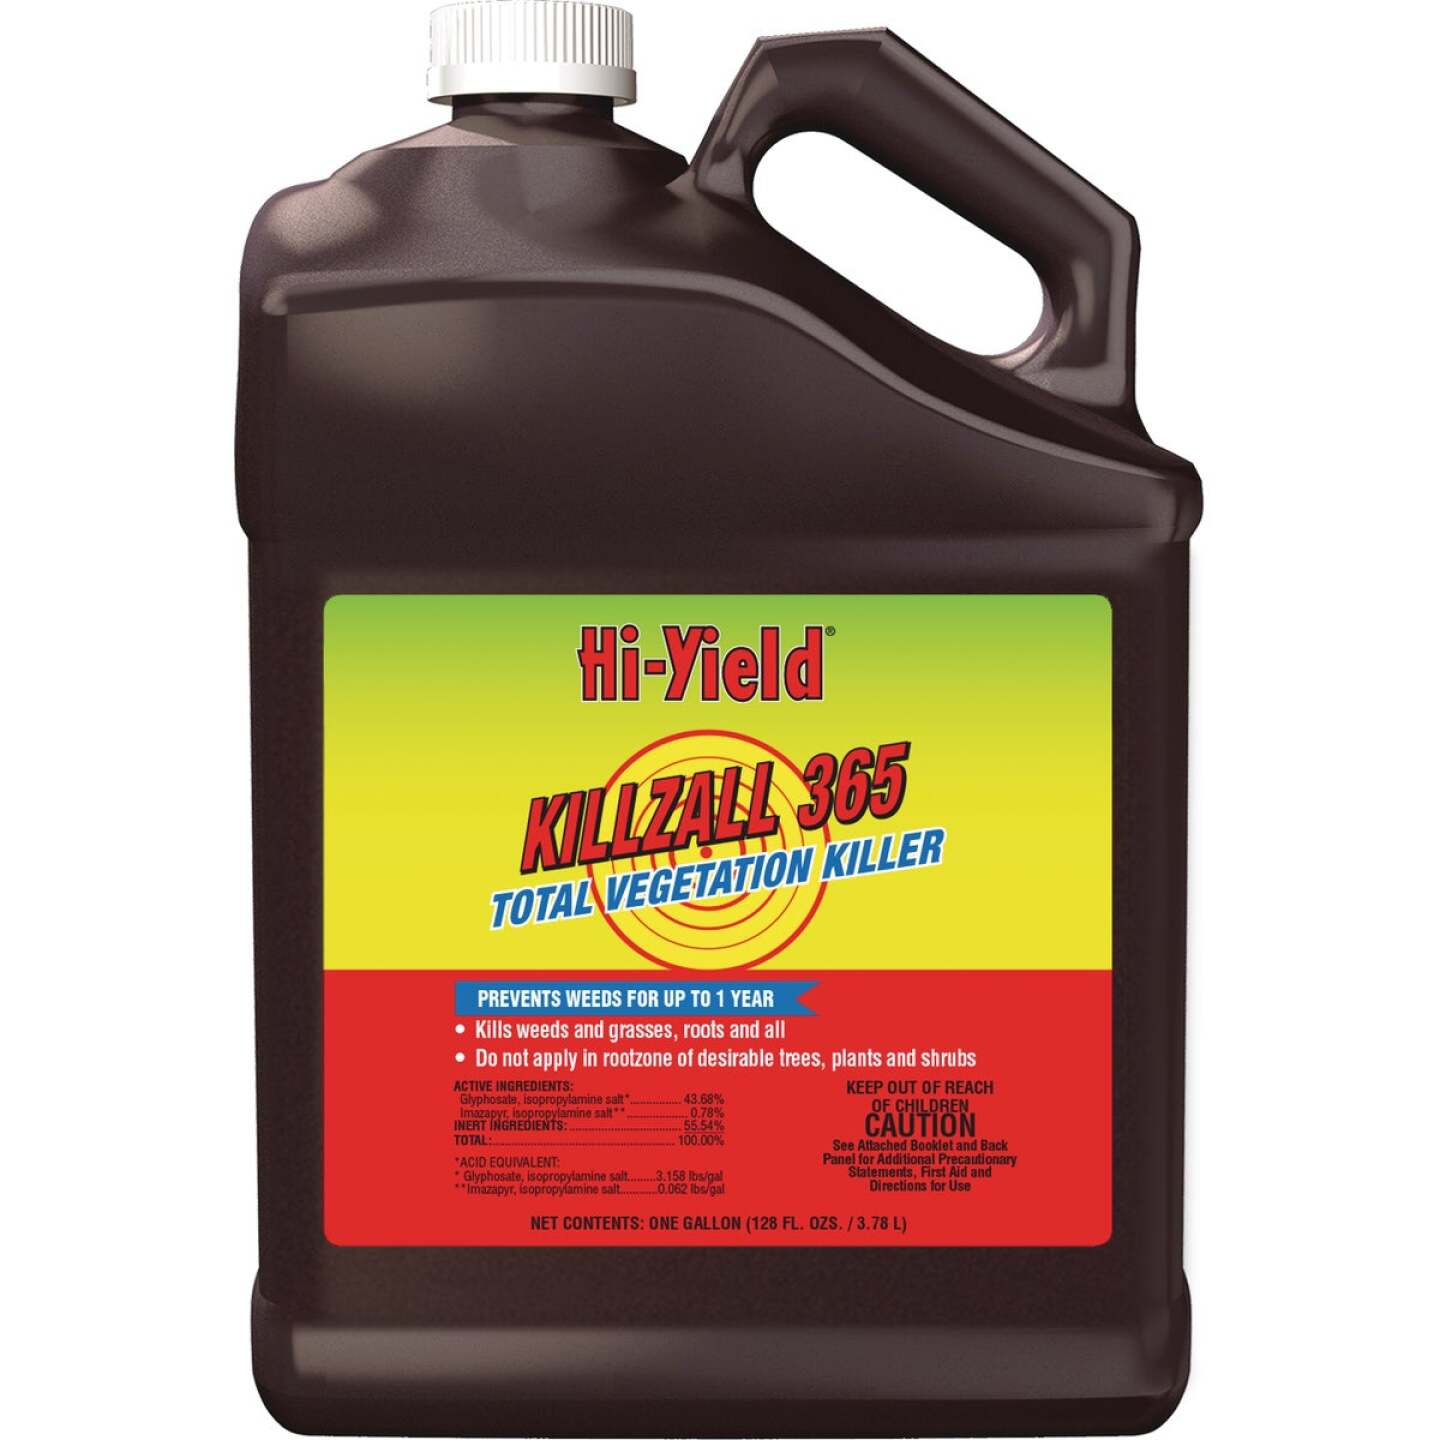 Hi-Yield Killzall 365 1 Gal. Concentrate Vegetation Killer Image 1